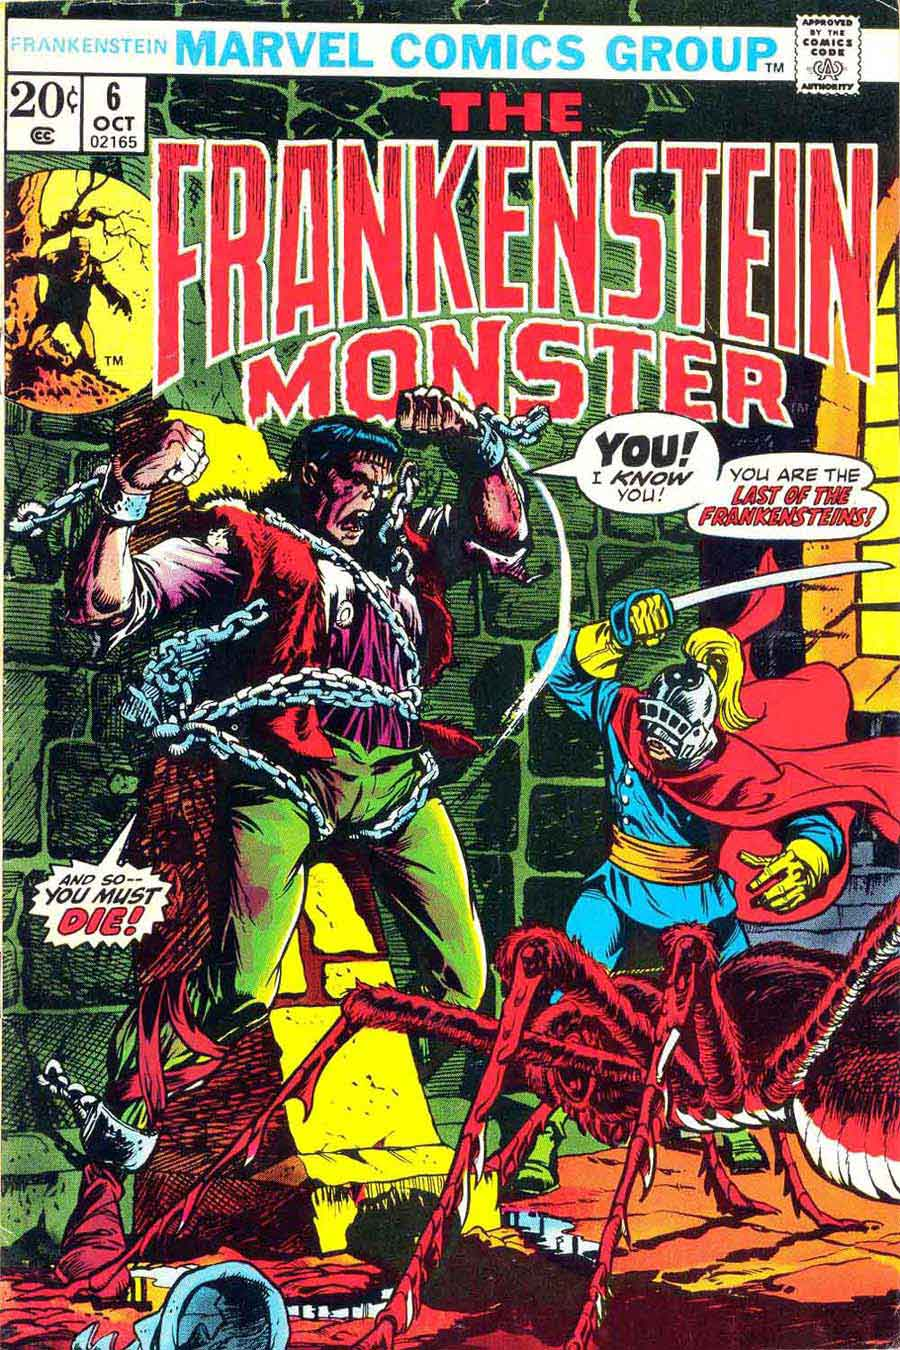 Frankenstein v2 #6 marvel comic book cover art by Mike Ploog